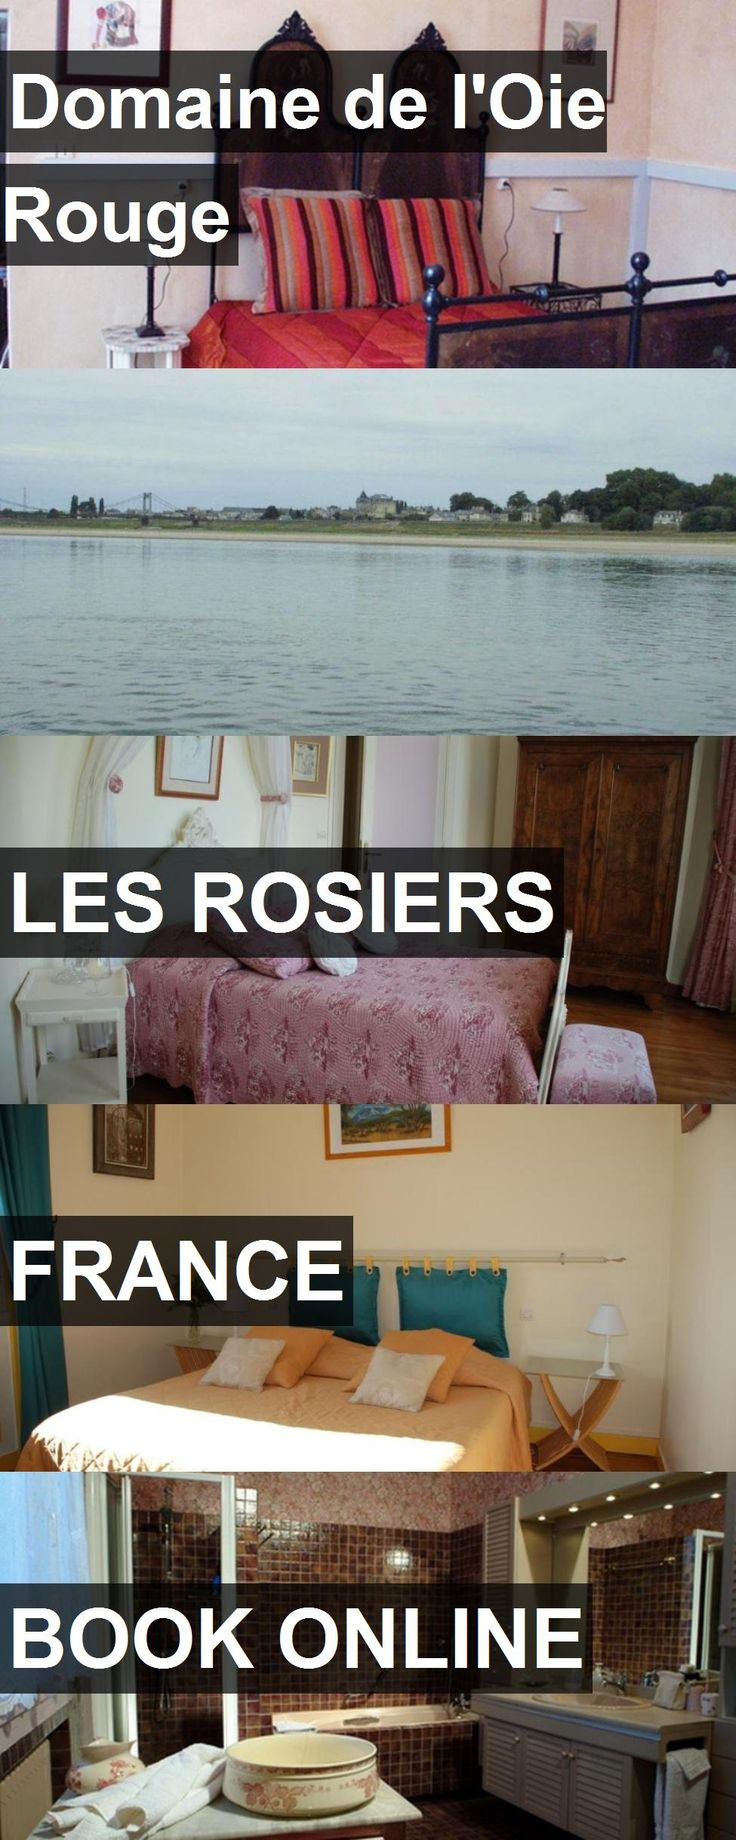 Hotel Domaine de l'Oie Rouge in Les Rosiers, France. For more information, photos, reviews and best prices please follow the link. #France #LesRosiers #travel #vacation #hotel